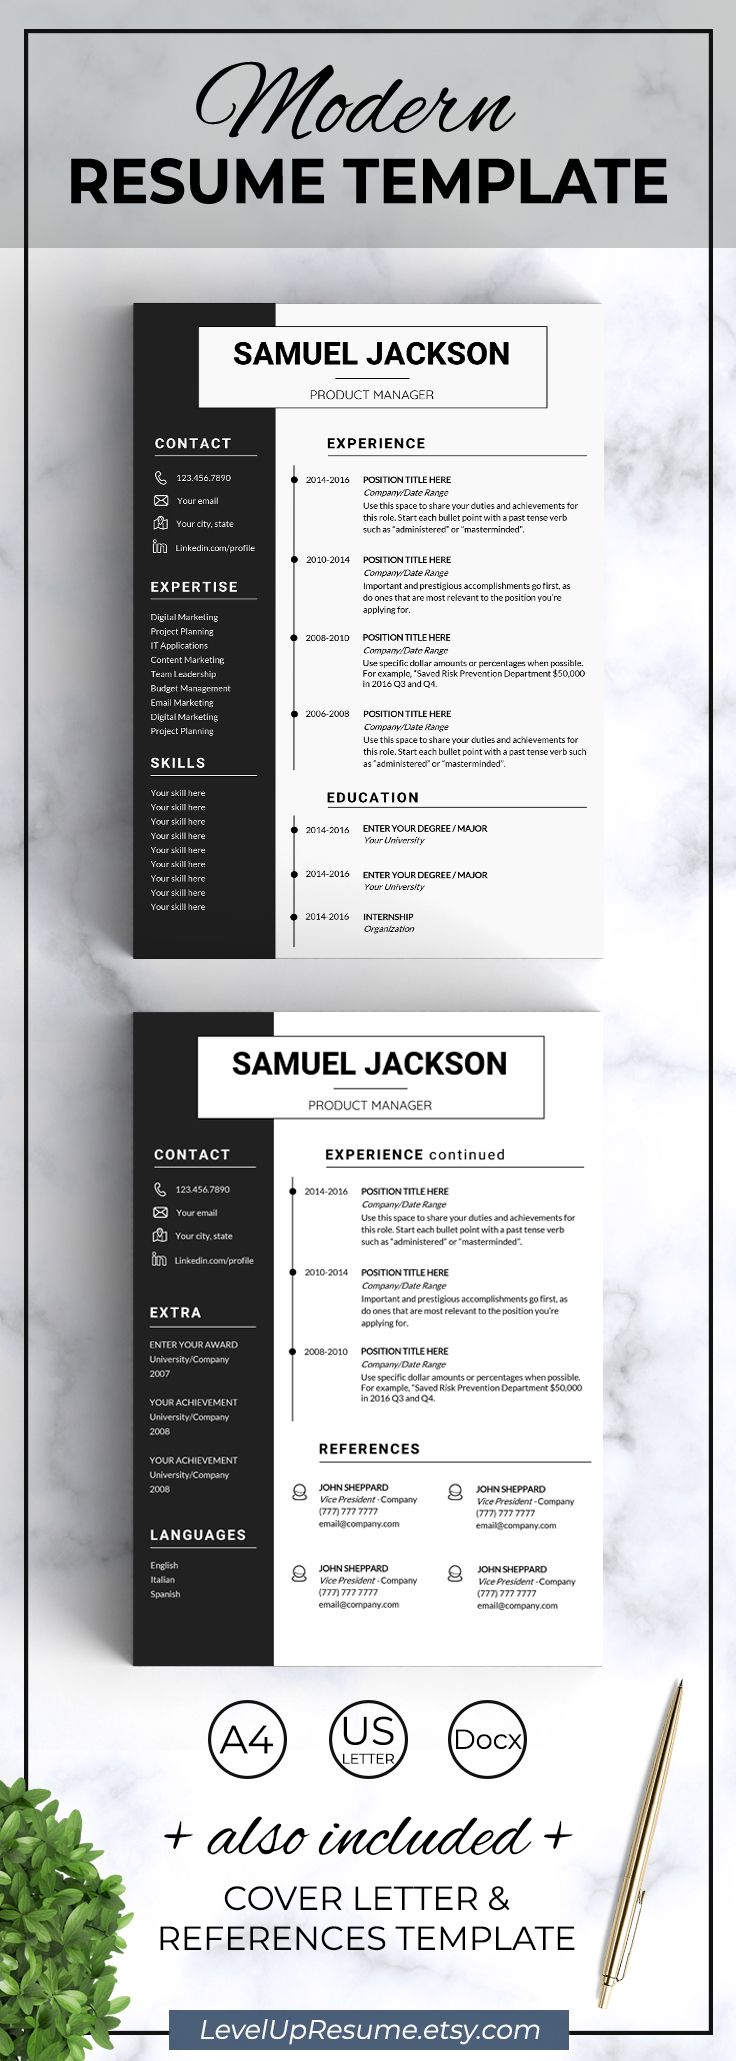 Clean and Simple resume template. Professional resume design. Career advice. Job search. Get hired! Click on the link or save the pin to your board >>>>> #career #job #resume #resumetemplate